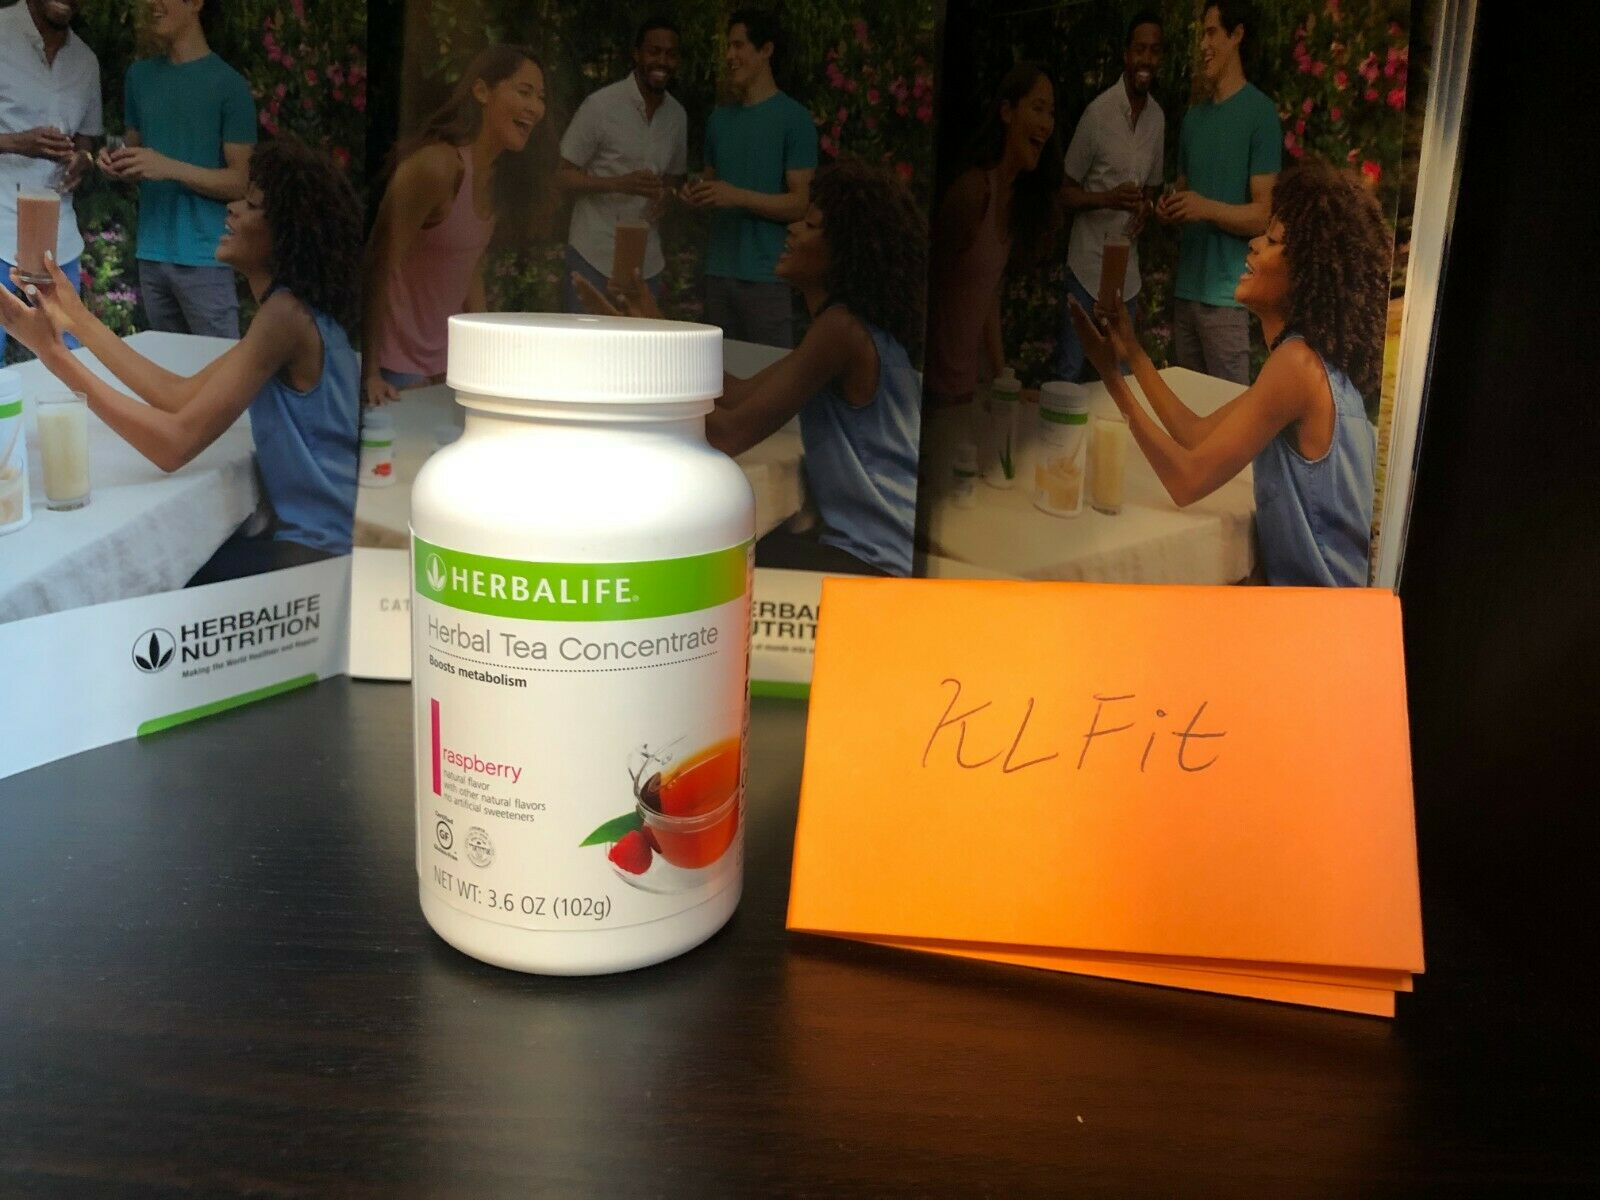 Herbal Tea Concentrate Weight Loss Herbalife Raspberry 3 6 Oz 0885260595325 For Sale Online